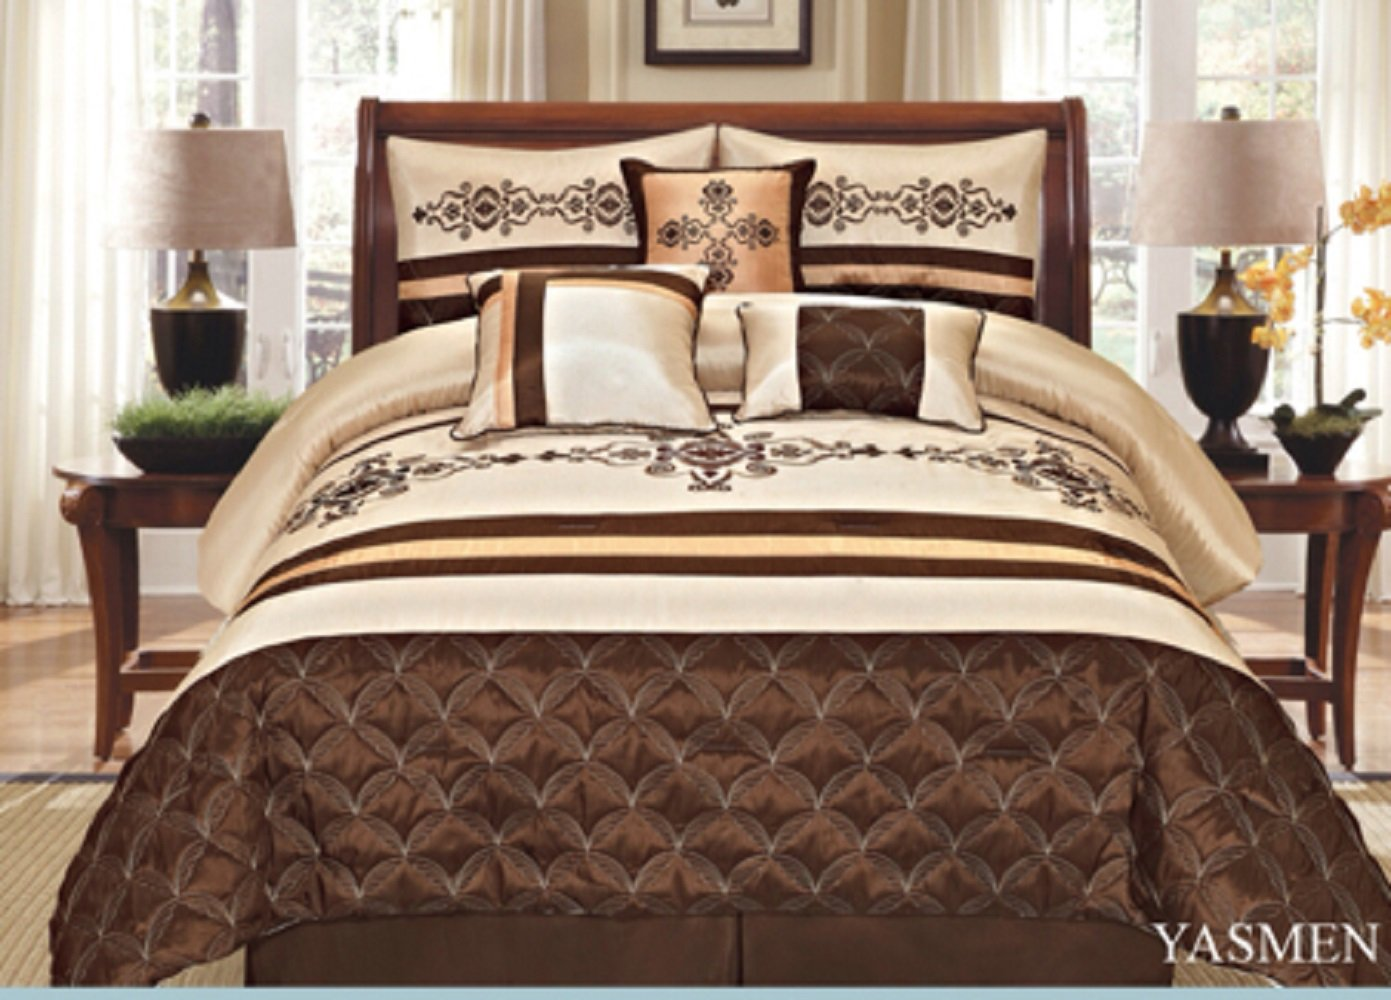 7 Pieces Complete Bedding Ensemble Beige Brown Gold Luxury Embroidery Comforter Set